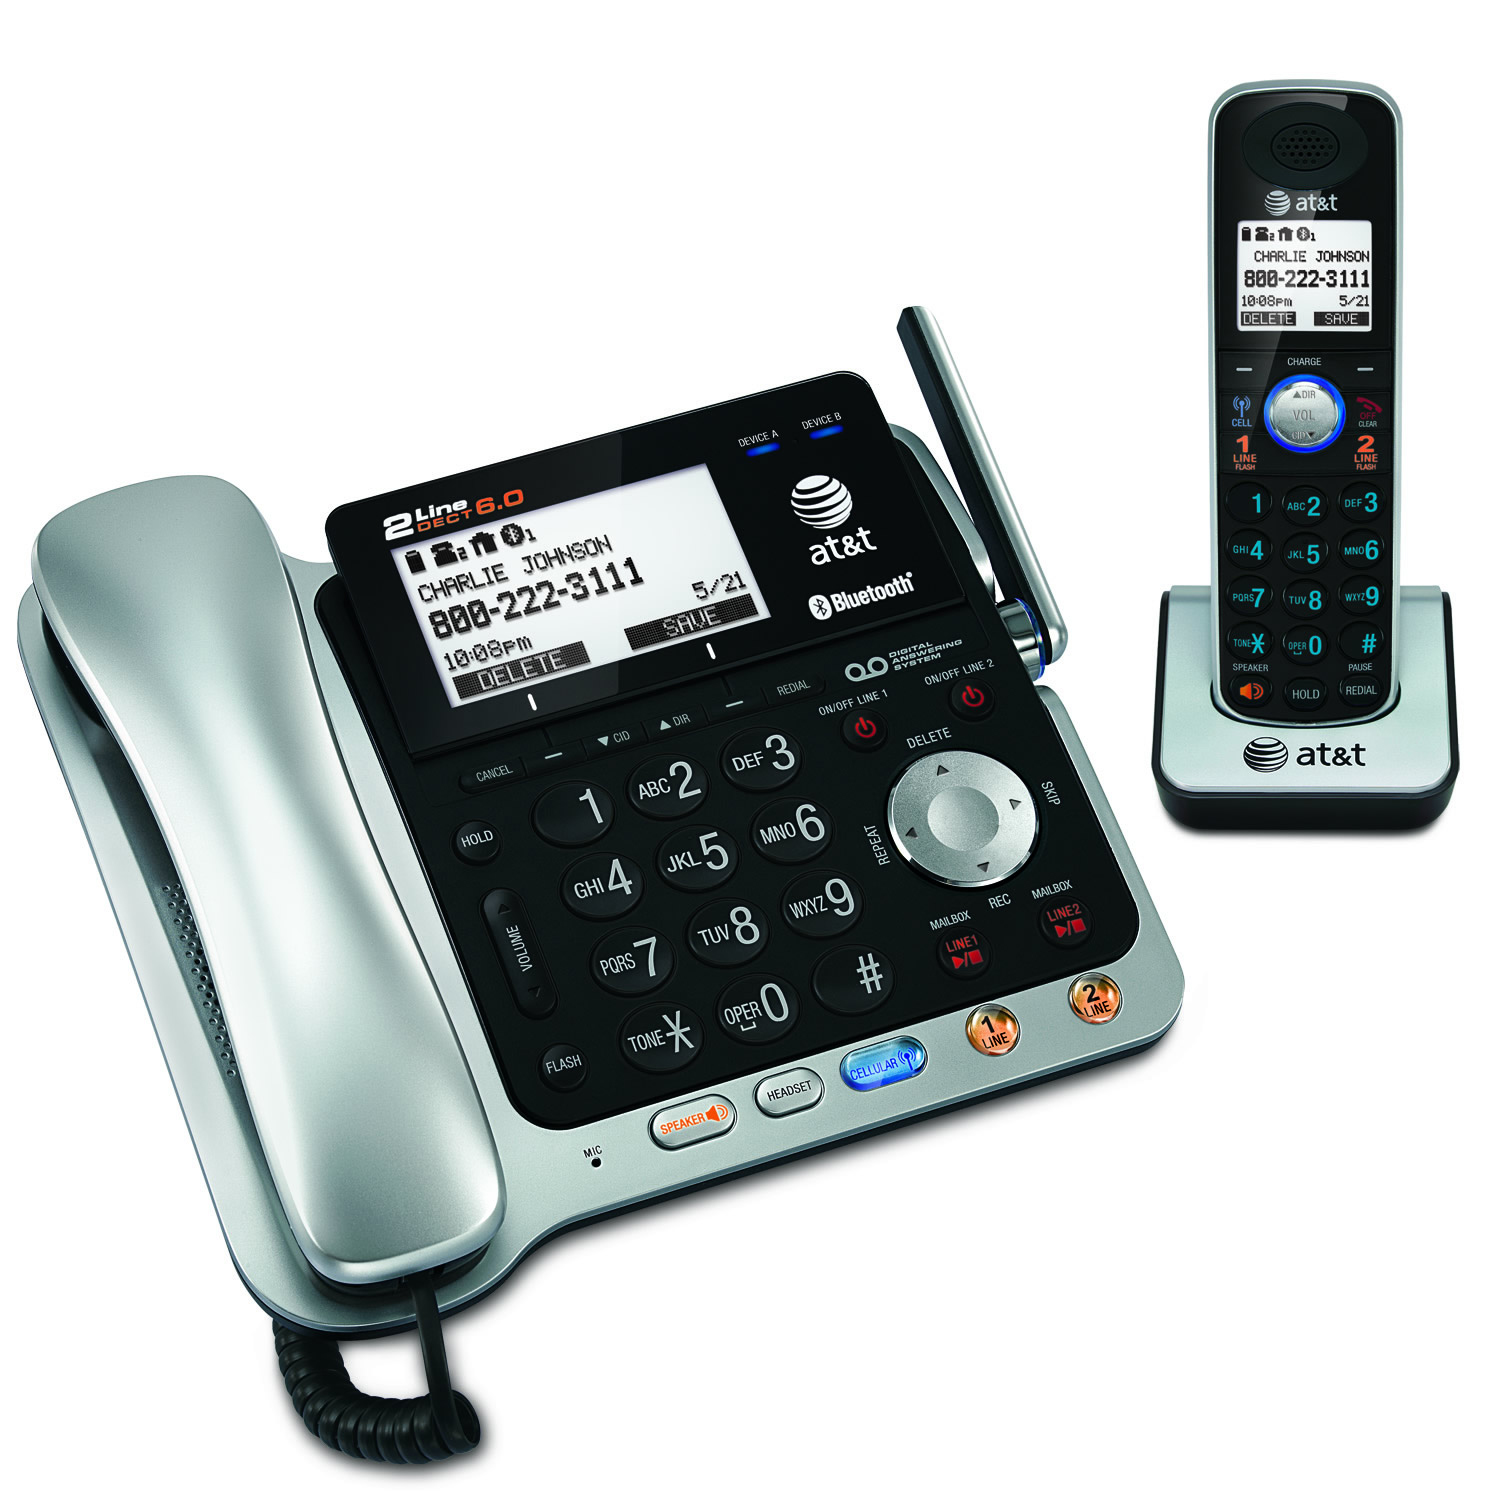 BSSN 2-line Corded/Cordless with ITAD-Cordless Telephones-DECT 6.0 Cordless Phones-Vt